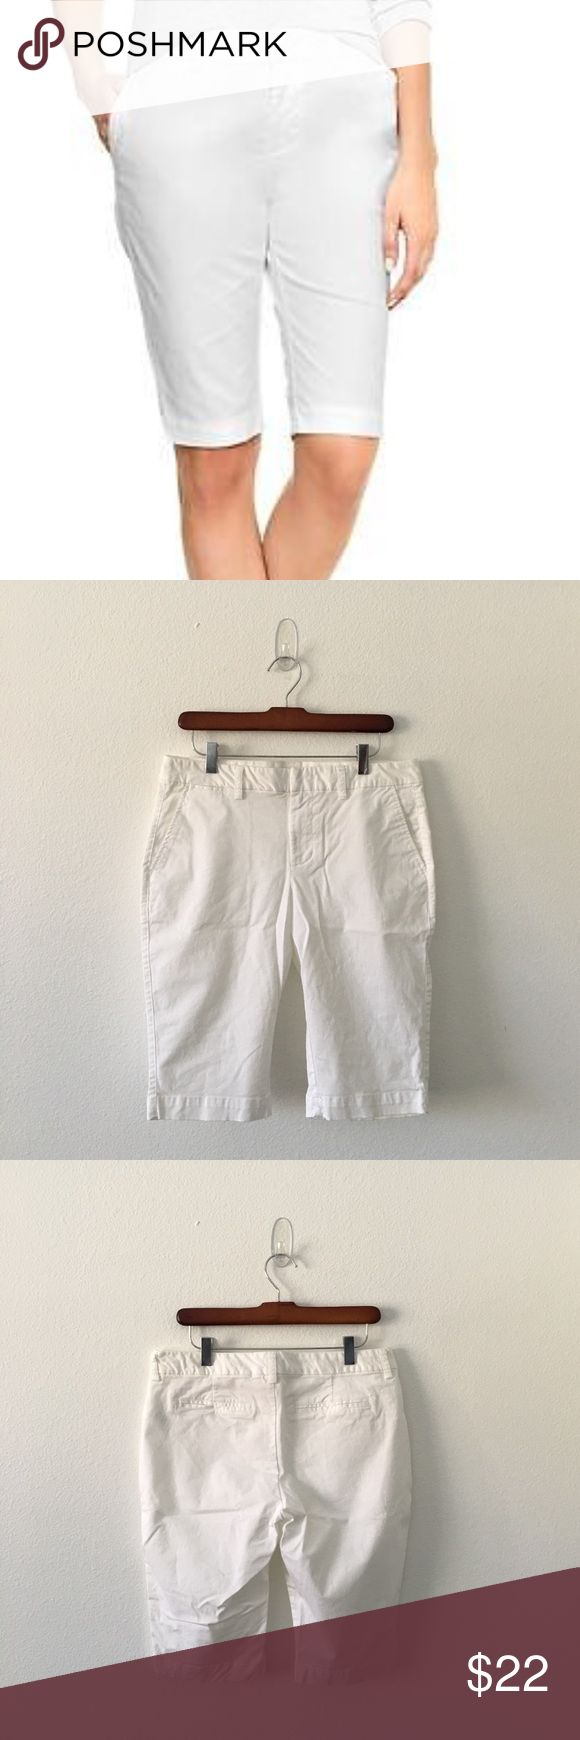 Khakis by Gap Slim City White fitted Bermuda short, 98% cotton with 2% spandex gives you a clean line. Faux pockets in the back with slanted pockets in the front. This pair shorts looks fabulous iron and worn with a crisp blouse or tee while also looking very cool wrinkled with your favorite rock T or denim shirt. Waist measures 16 inches across, 9 inch rise and 20 inches in total length. Excellent used condition. No flaws or stains. GAP Shorts Bermudas